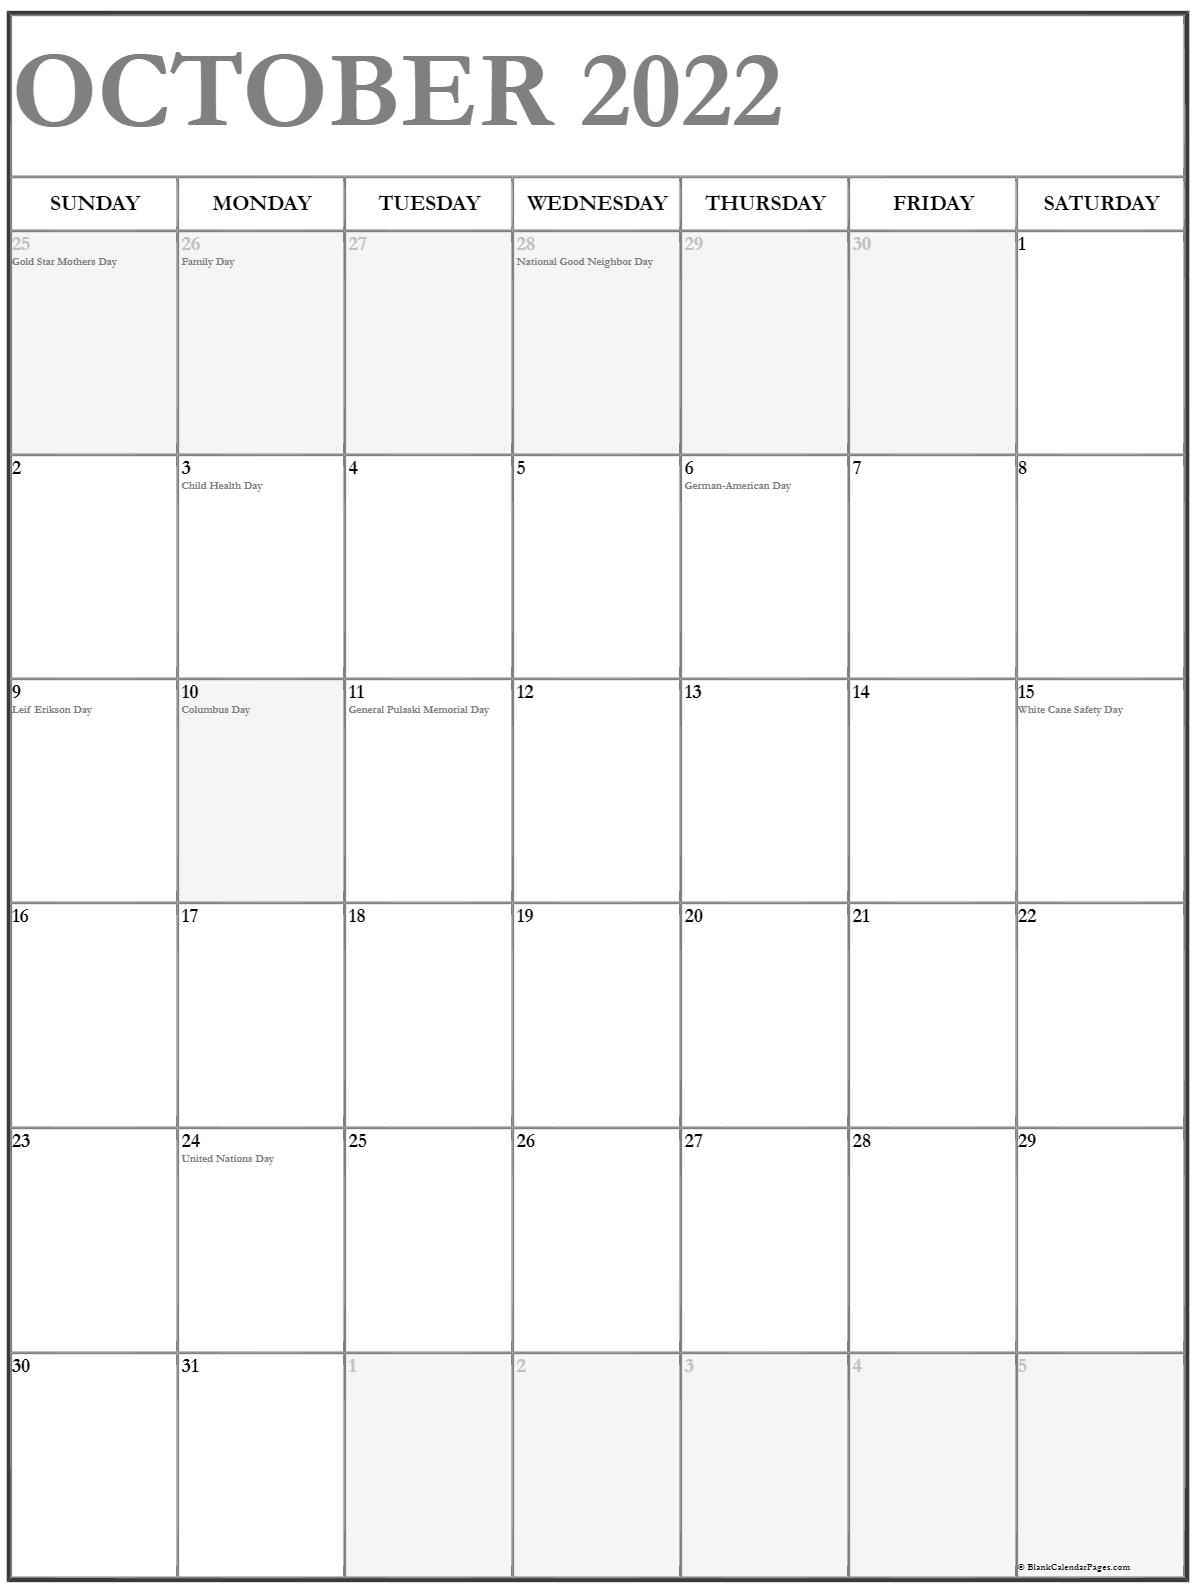 Prior month expectations as reported by reuters last week&aposs ca. October 2022 Vertical Calendar | Portrait